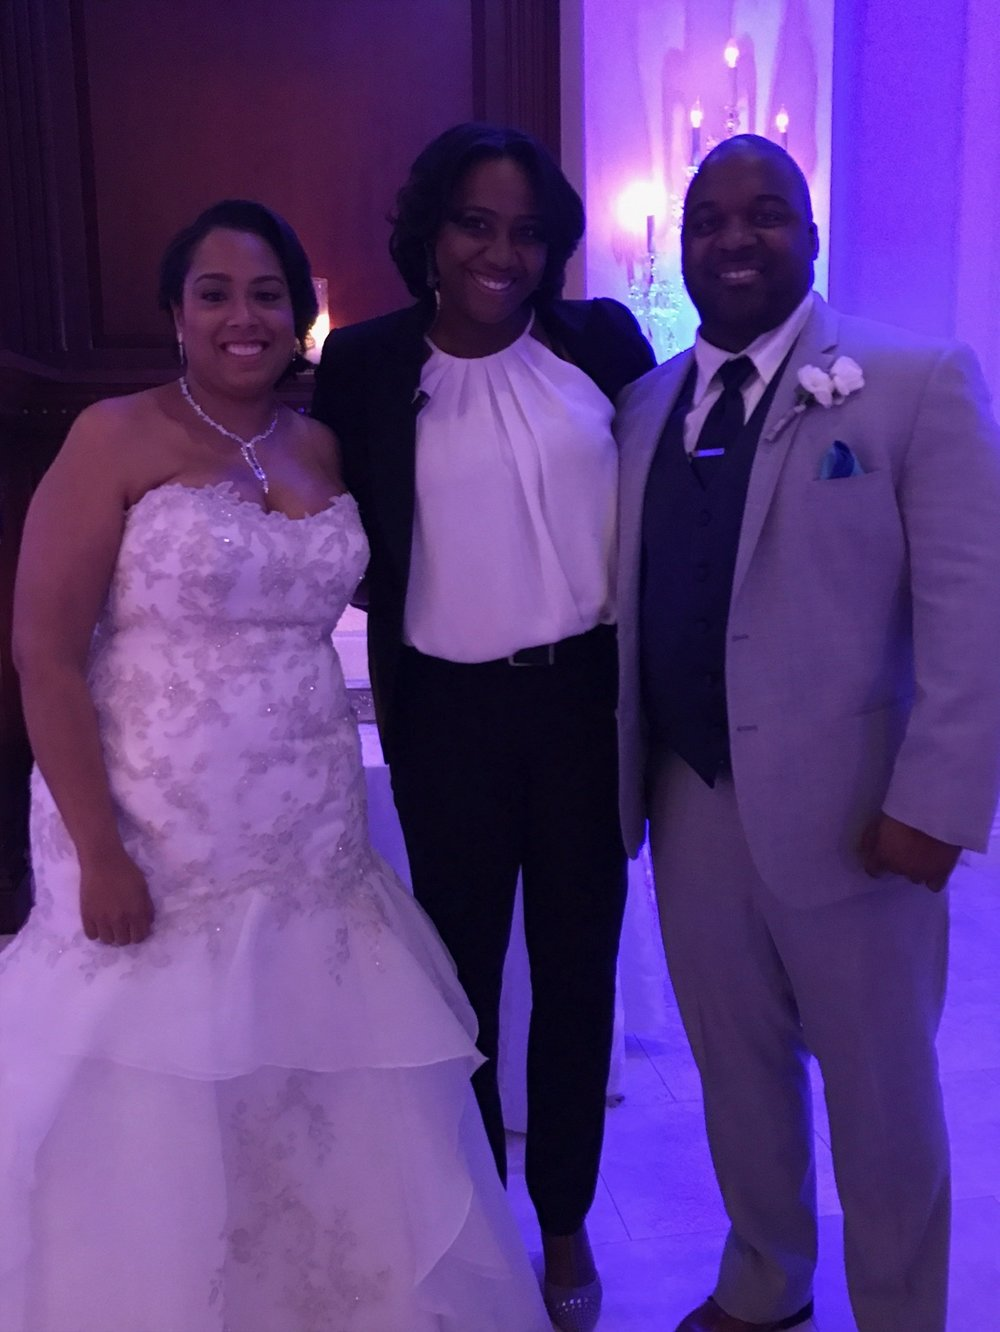 Raquel was able to get a quick photo with the Bride and Groom before the festivities began. What a wonderful couple to work with!